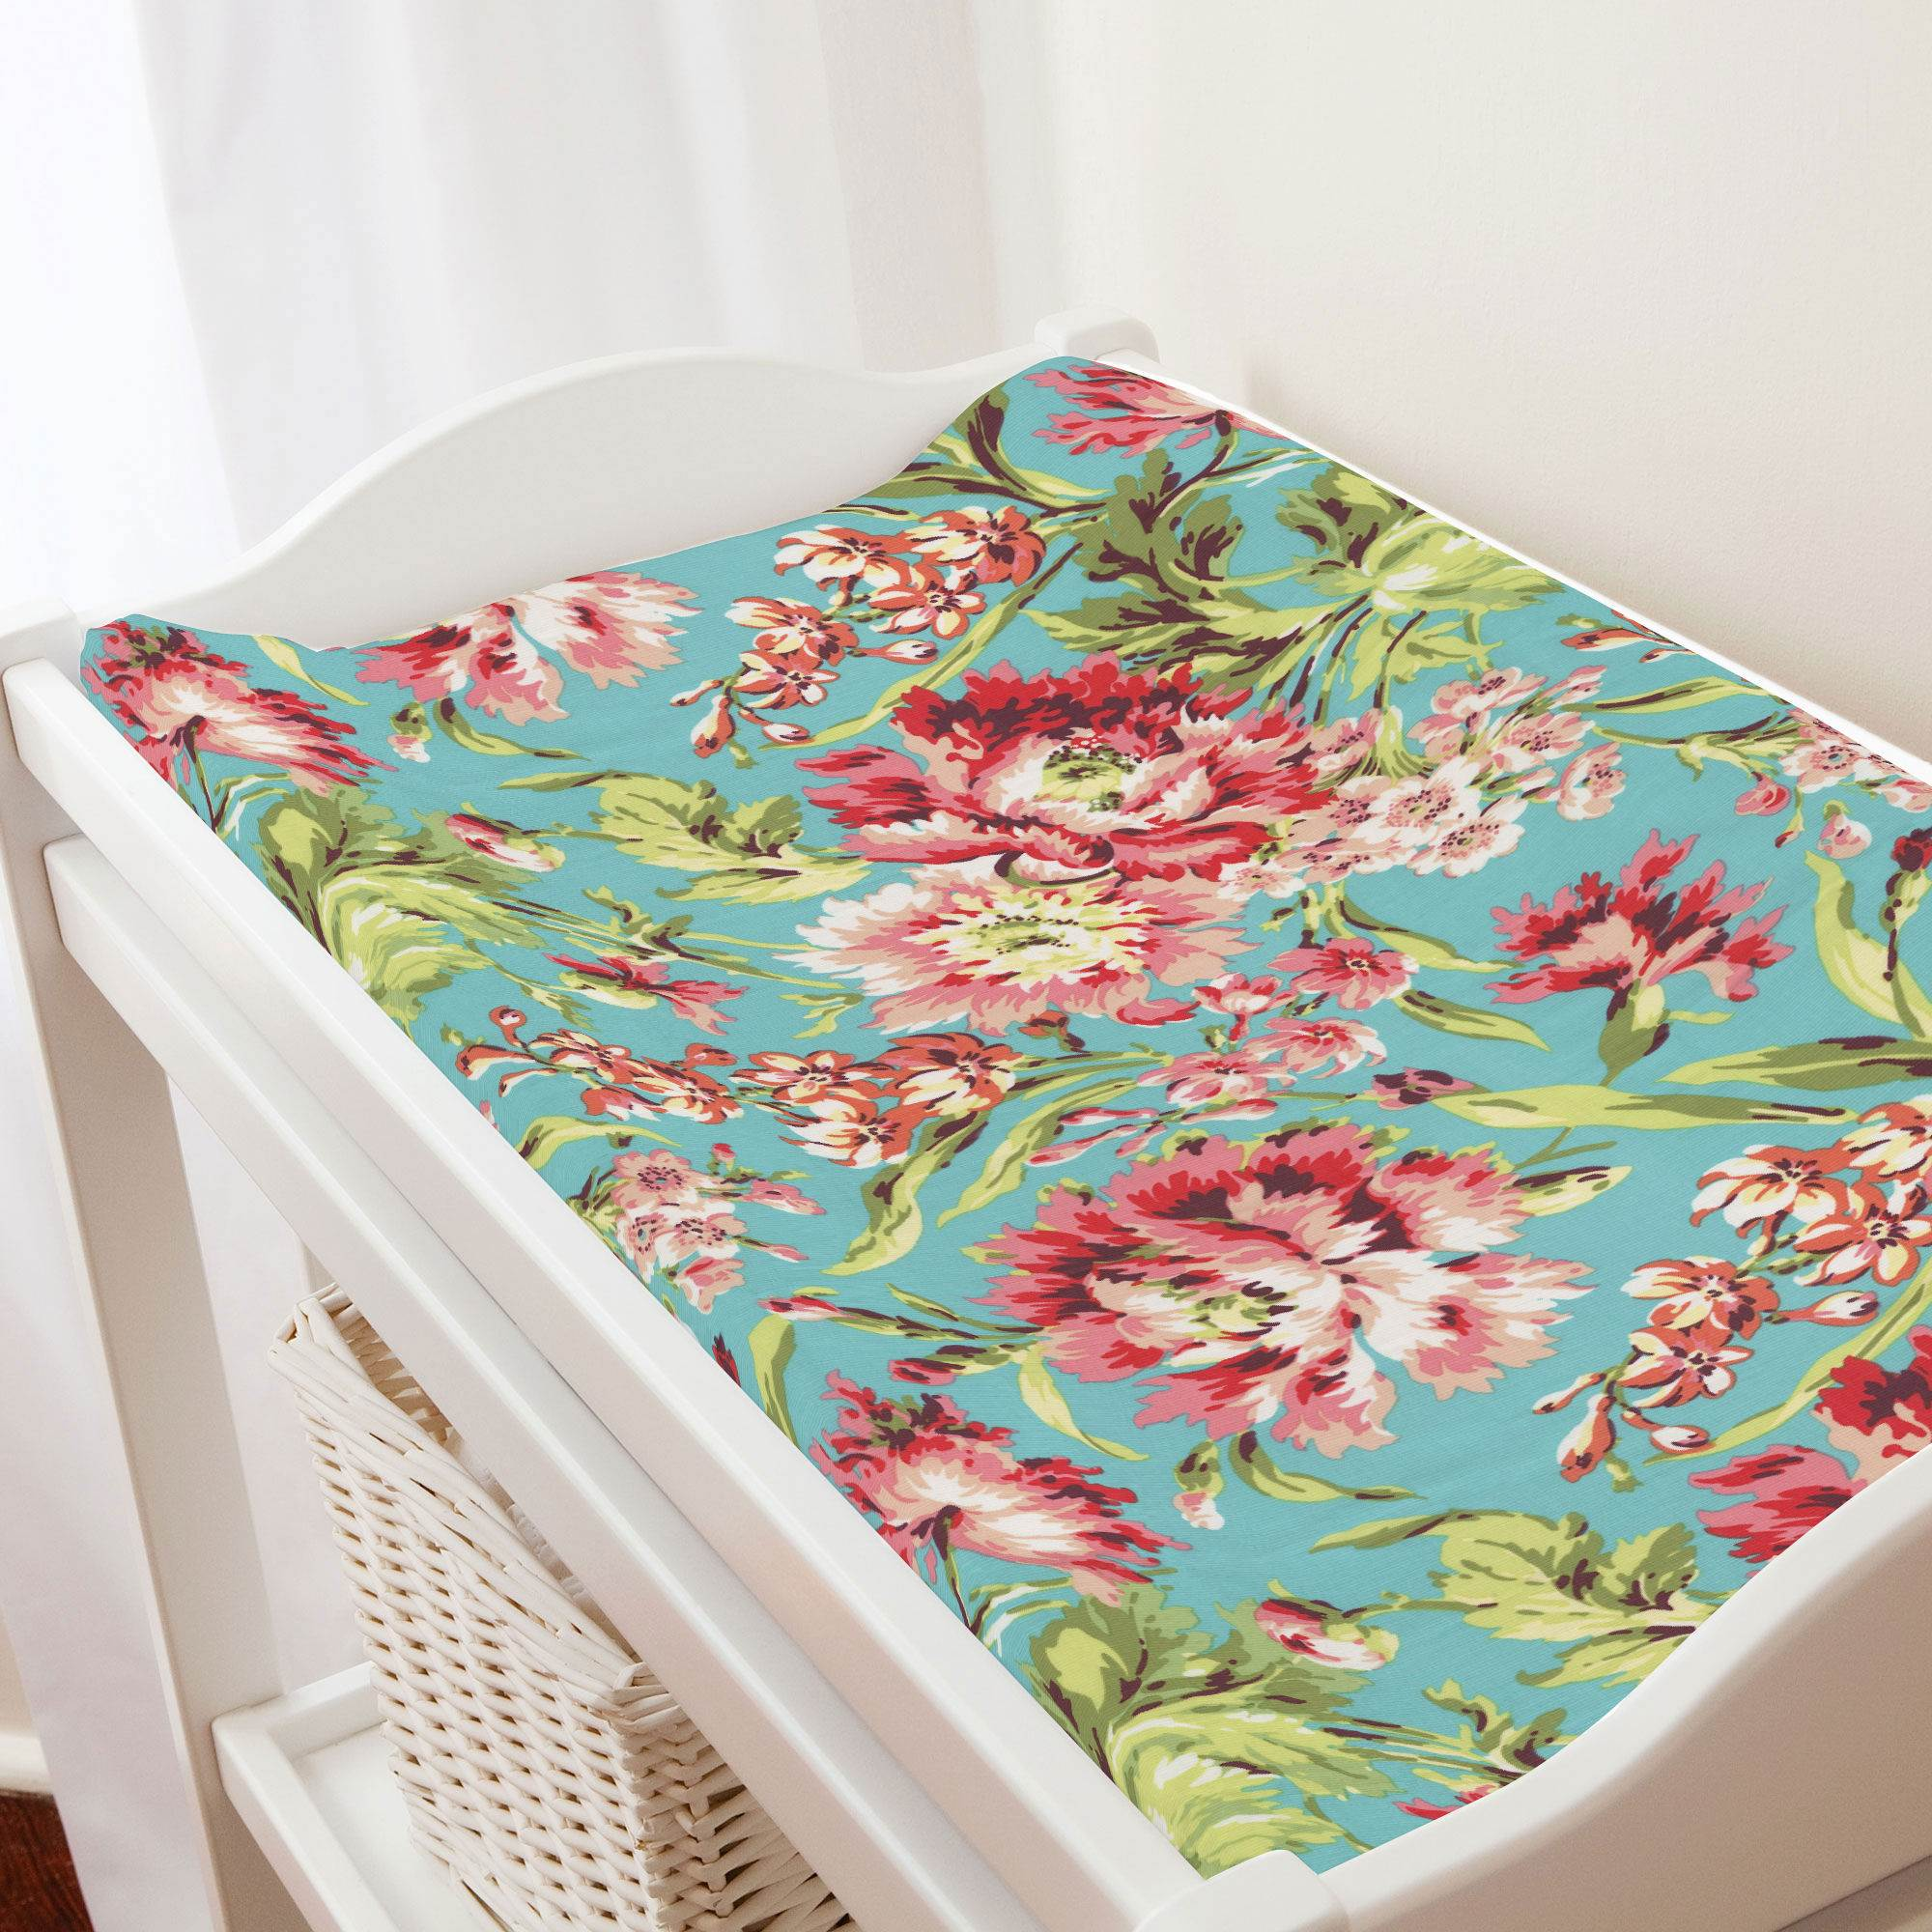 Bella Butterfly Coral and Green Designer Baby Contour Changing Pad  Mat Cover with Coral Minky Insert